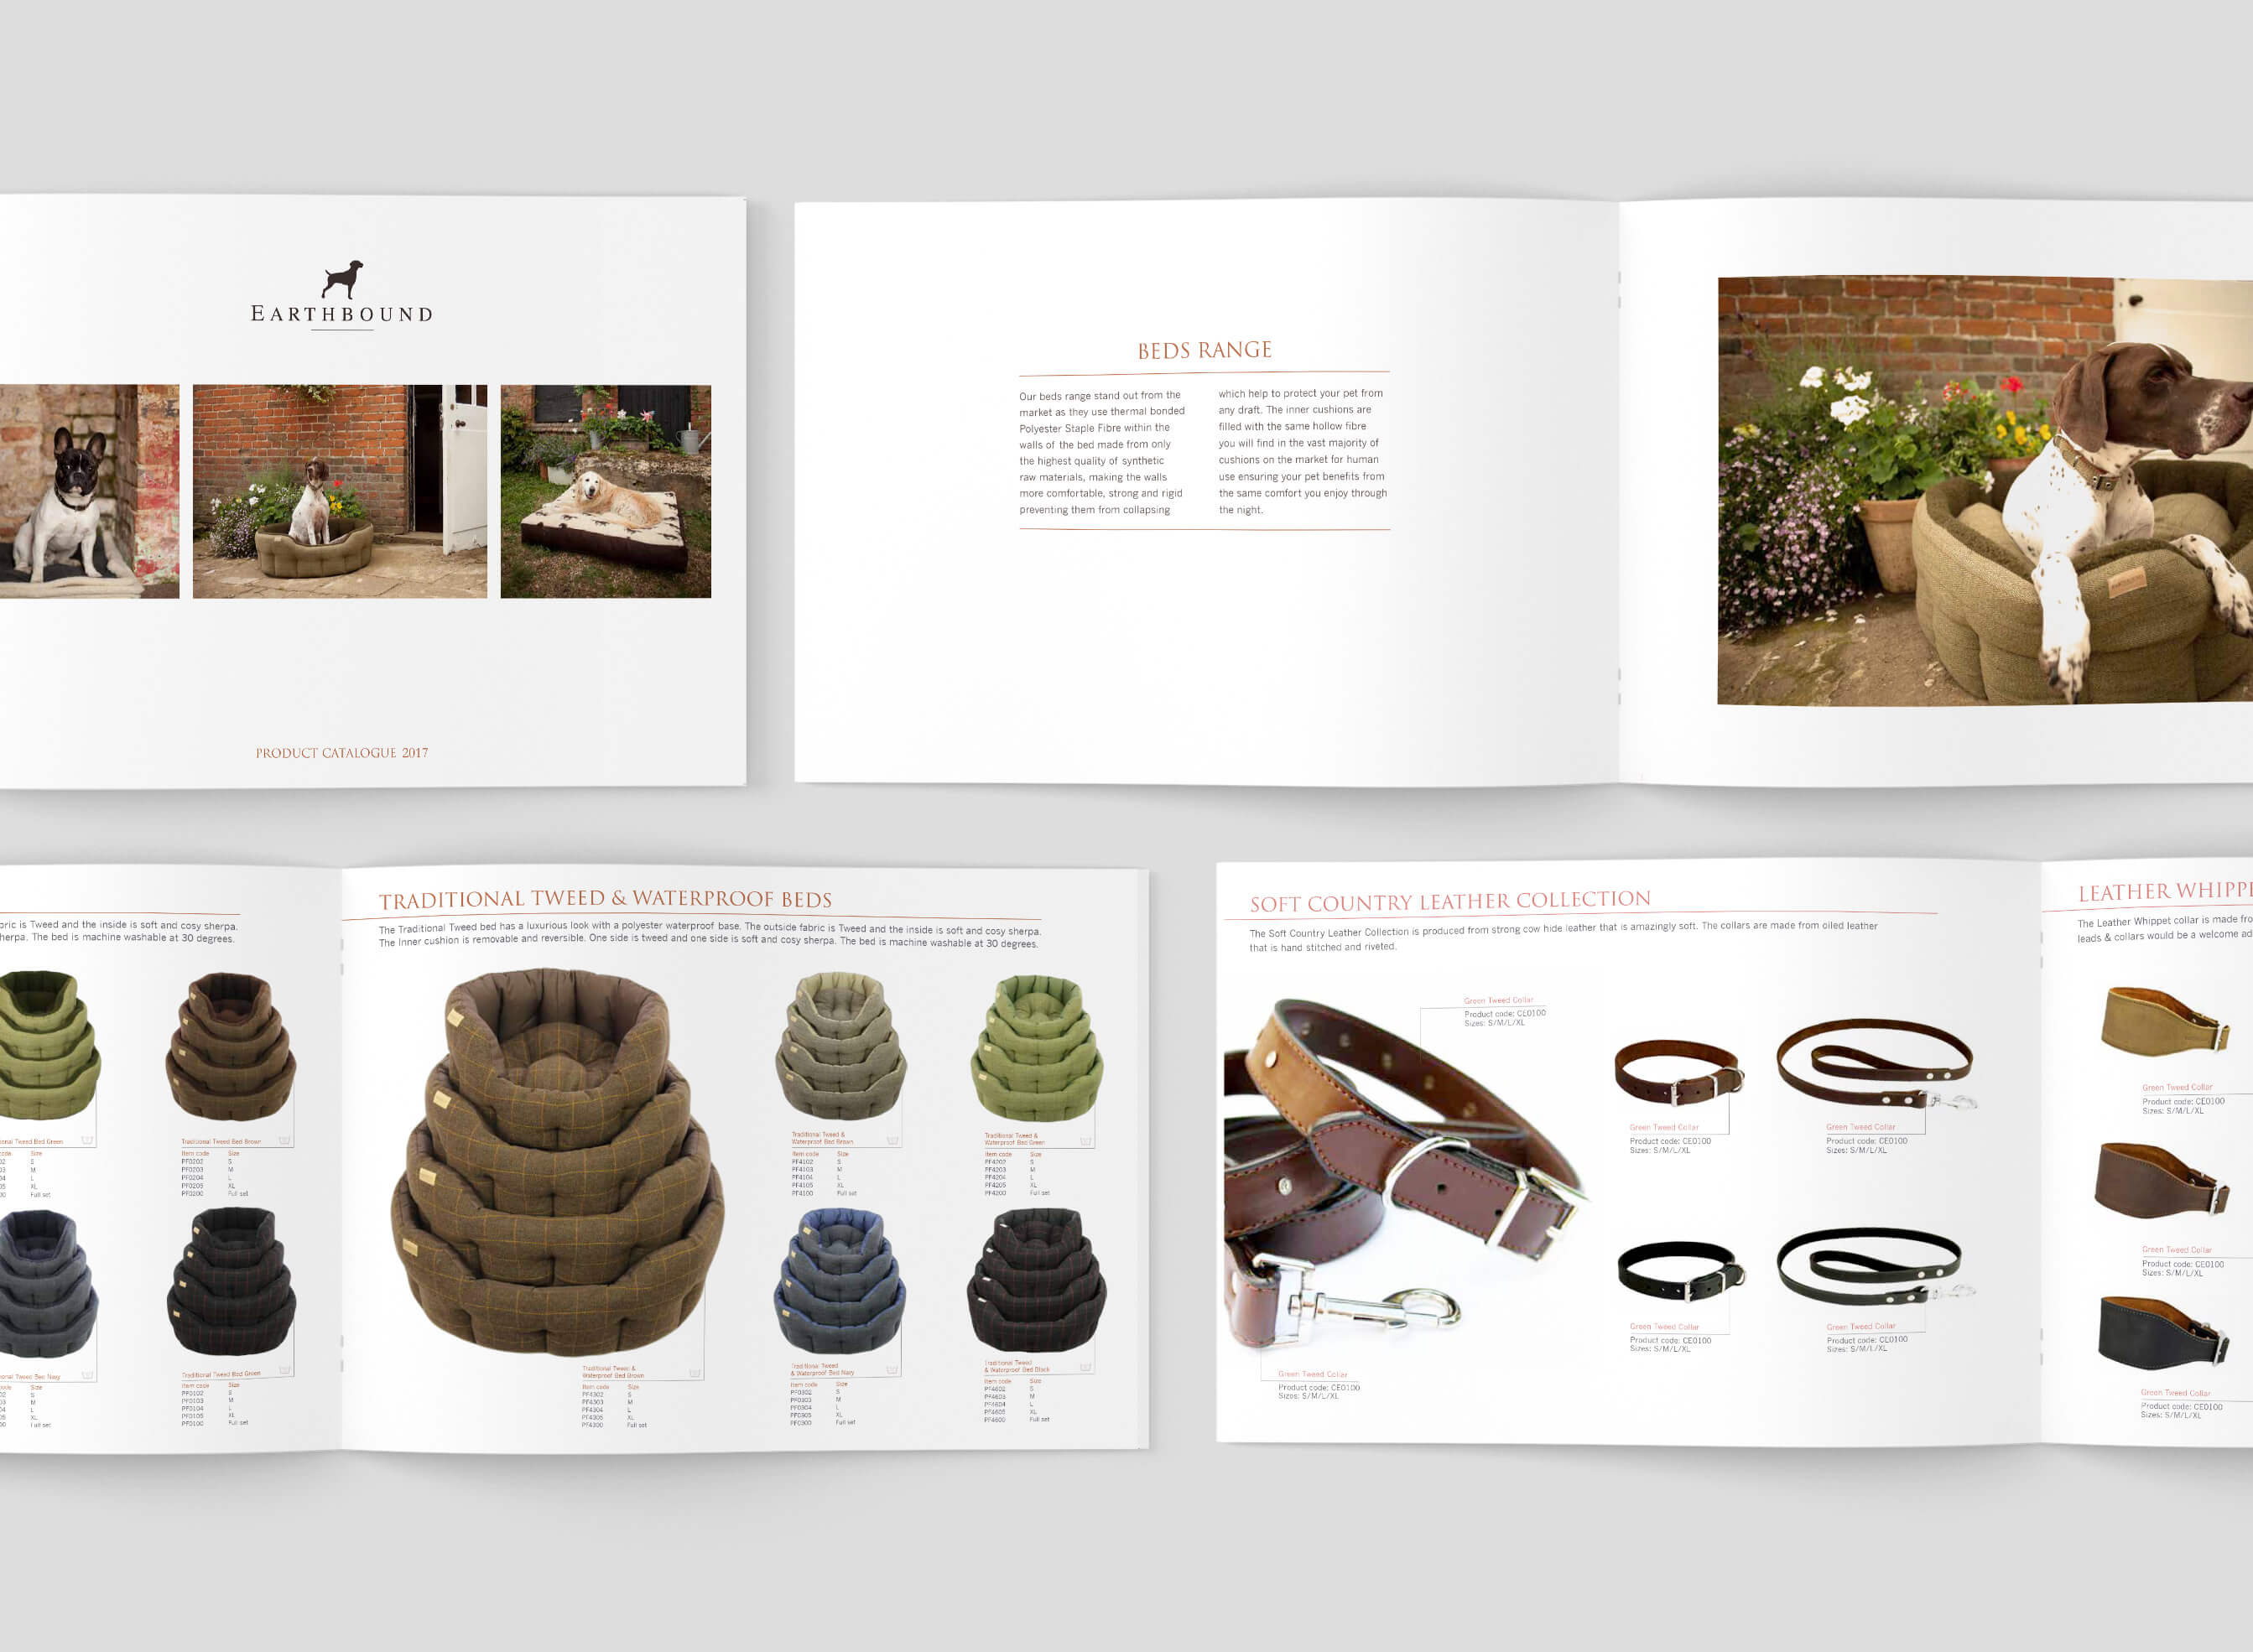 Product catalogue designed and printed for Earthbound UK